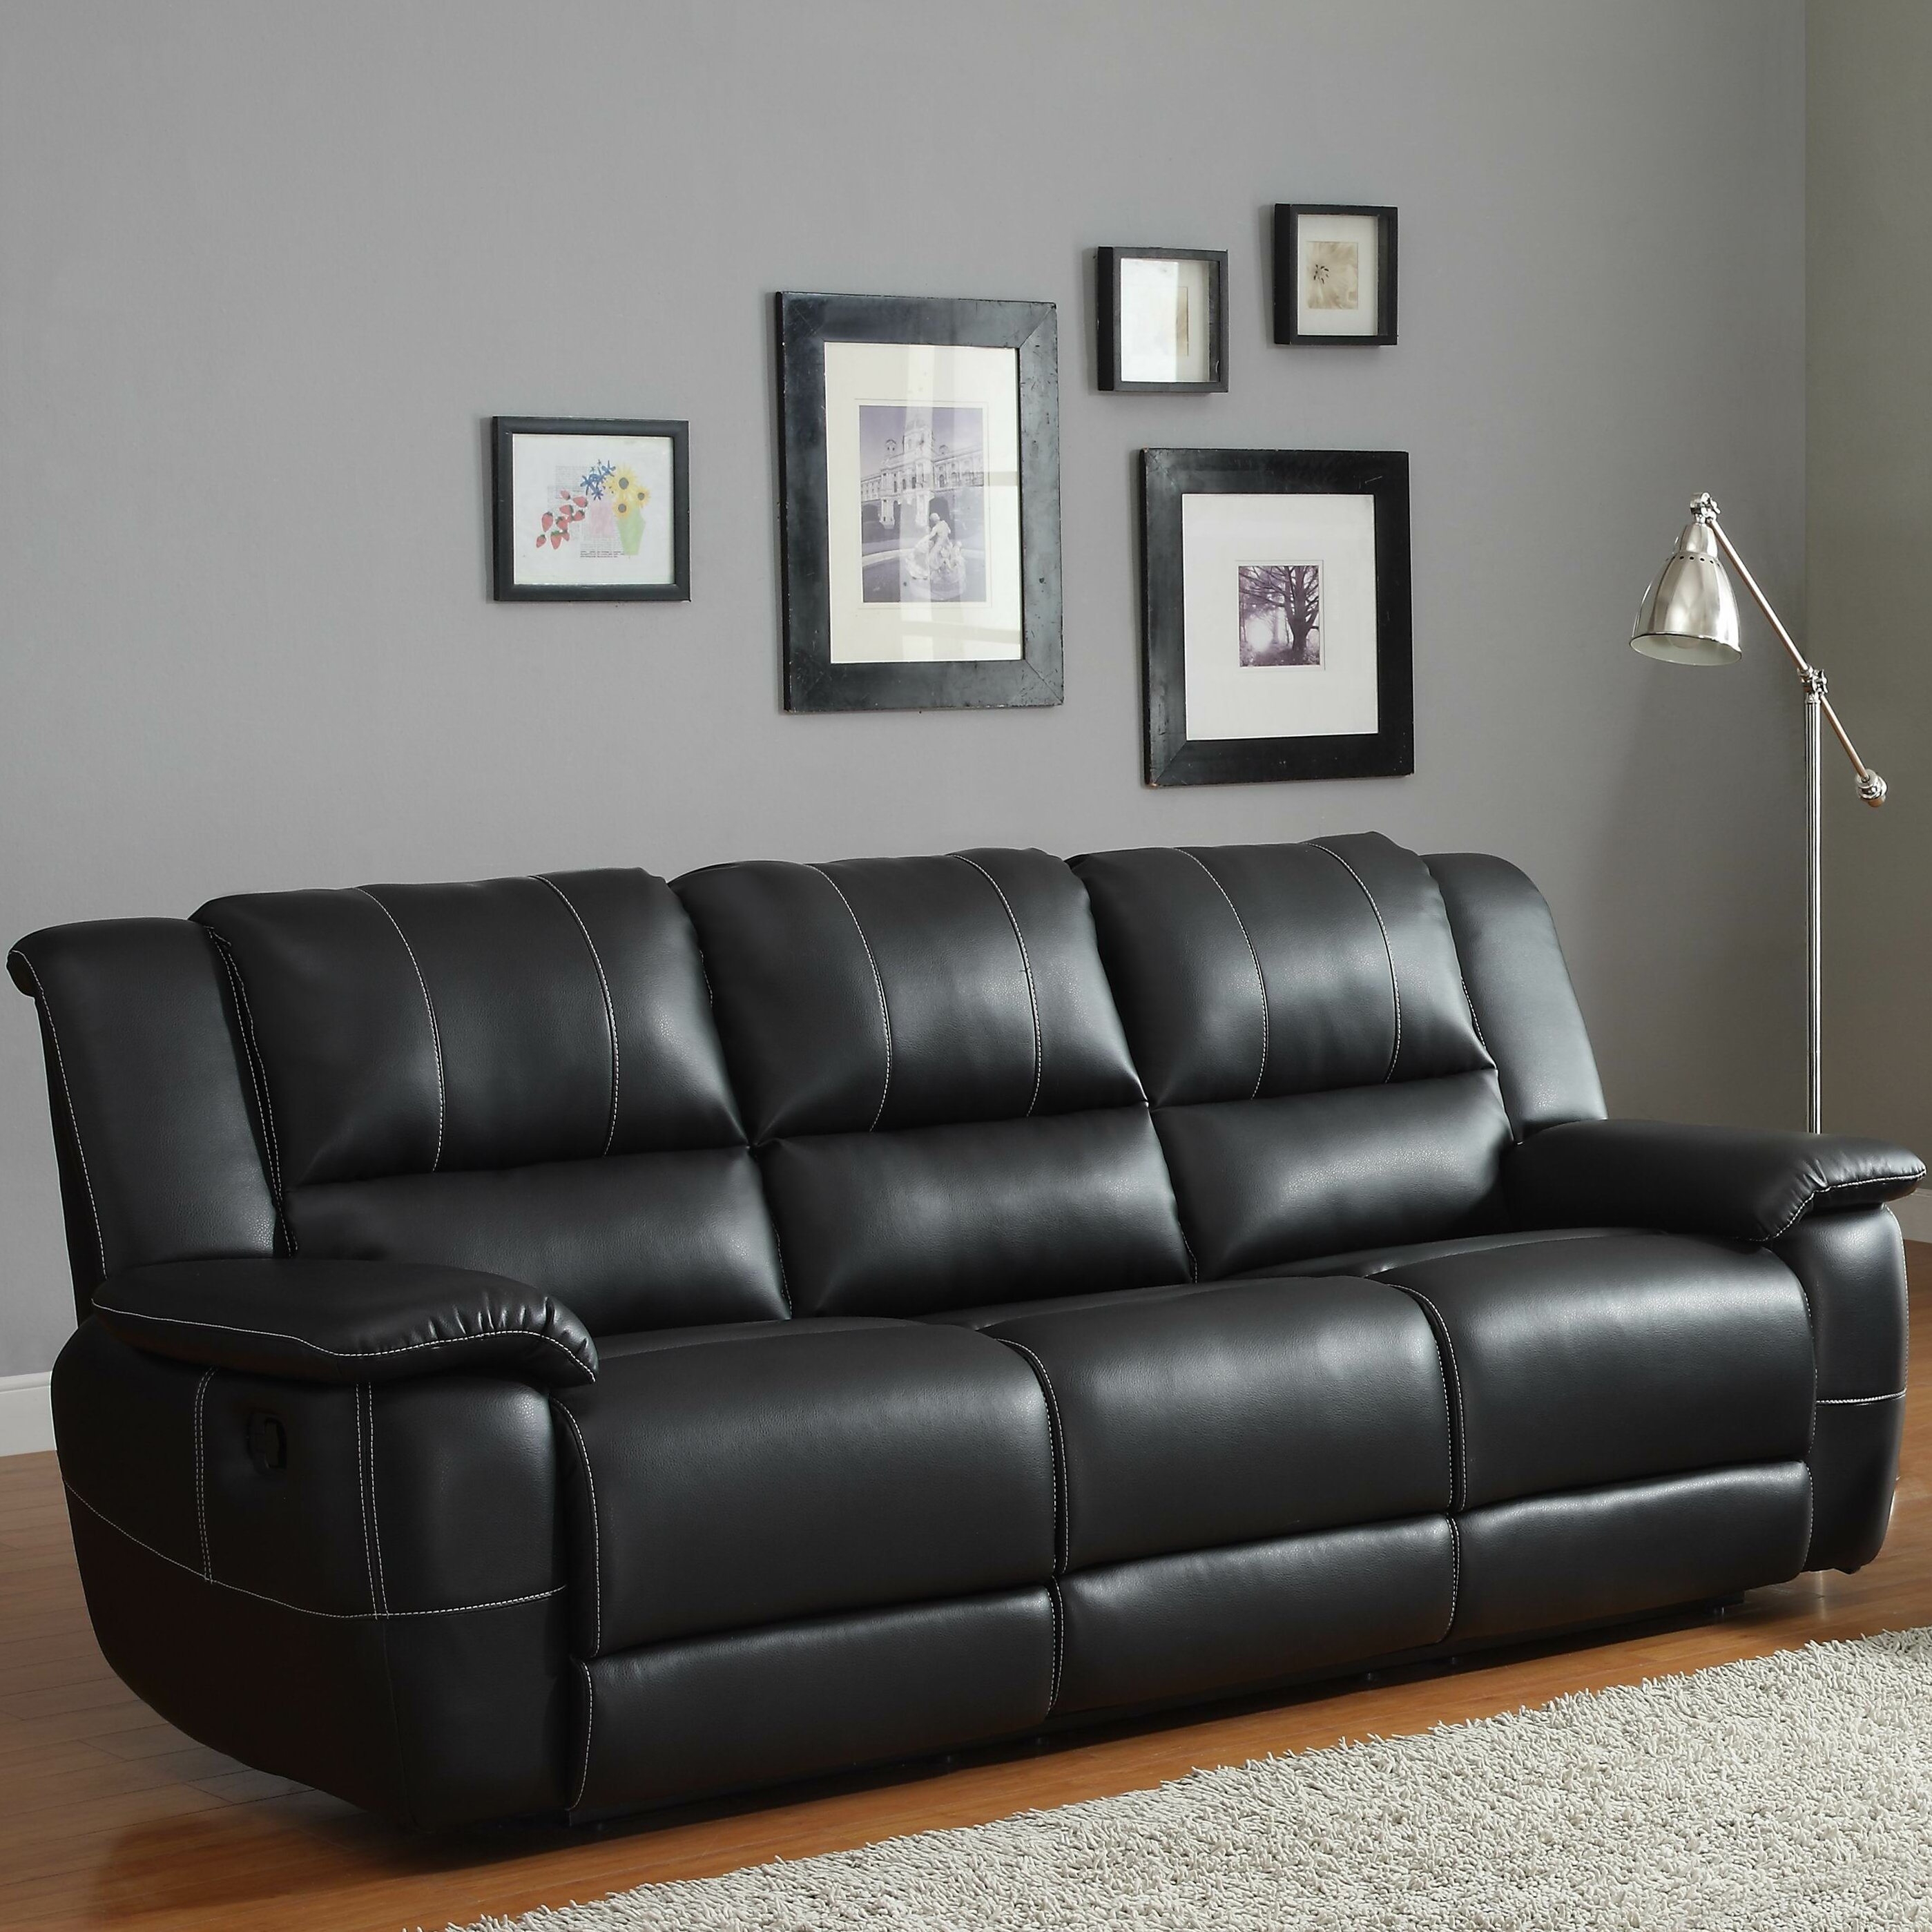 Woodhaven Living Room Furniture Woodhaven Hill Cantrell Living Room Collection Reviews Wayfair